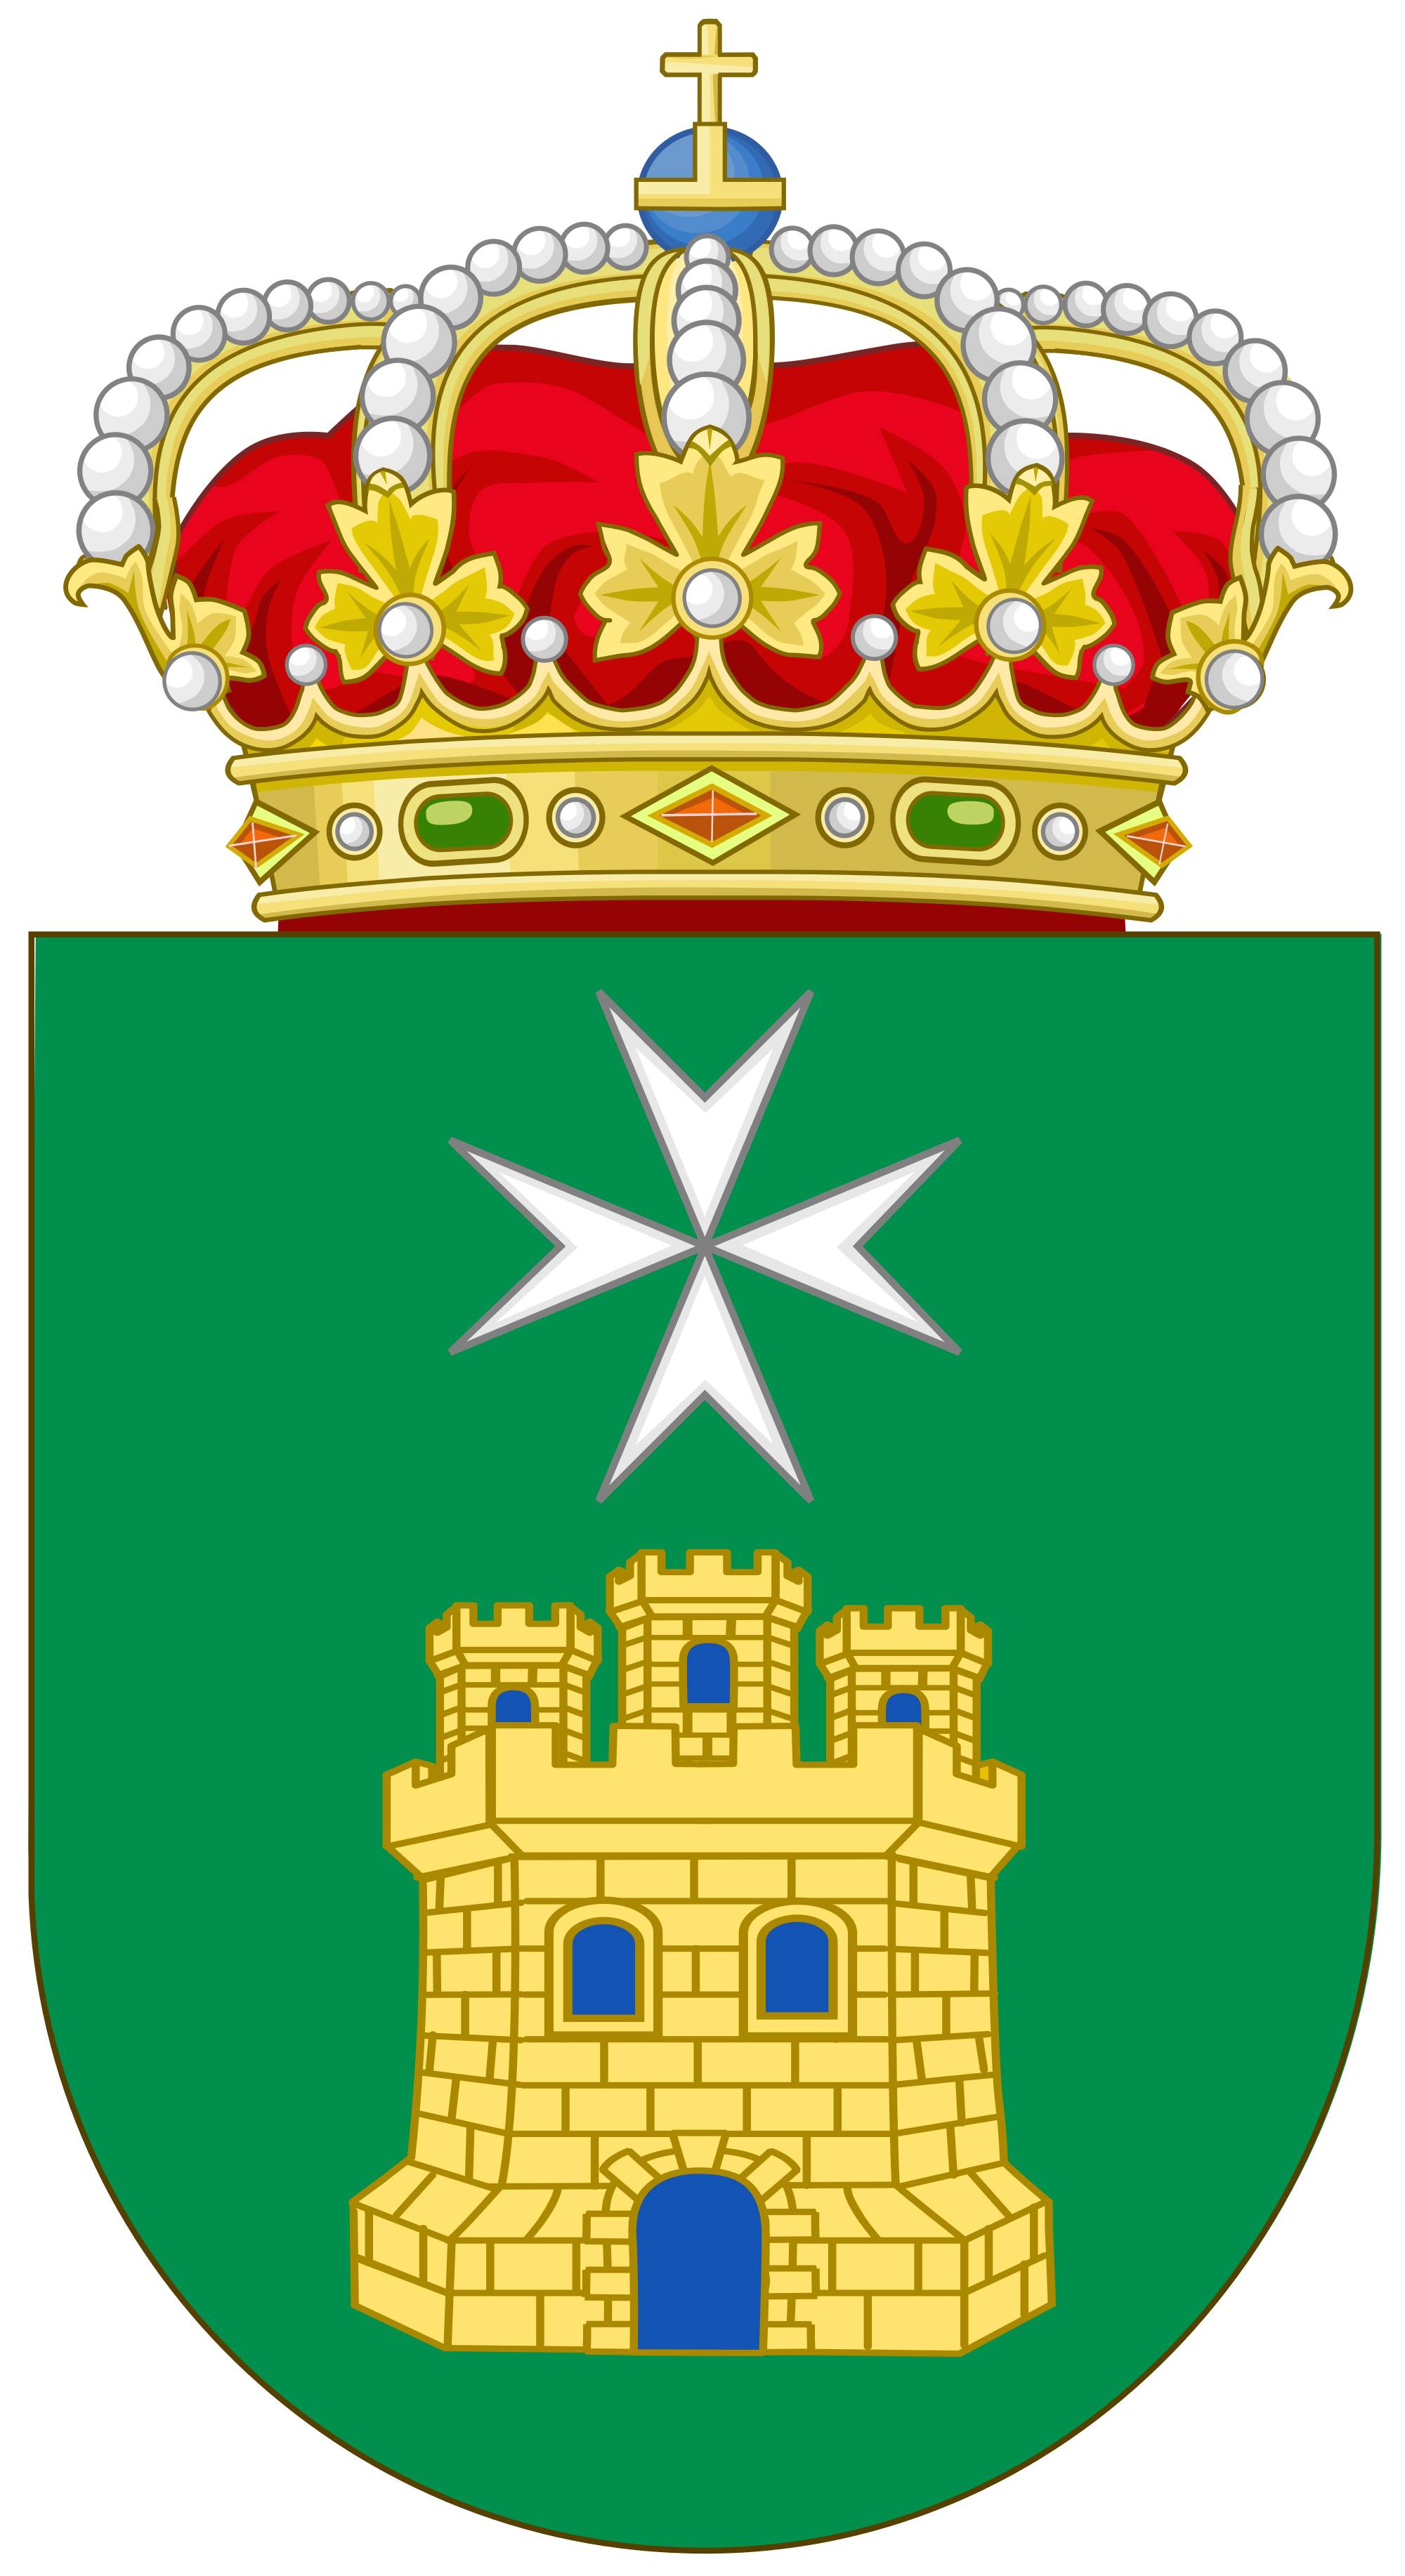 File:Coat of Arms of Consuegra.svg.